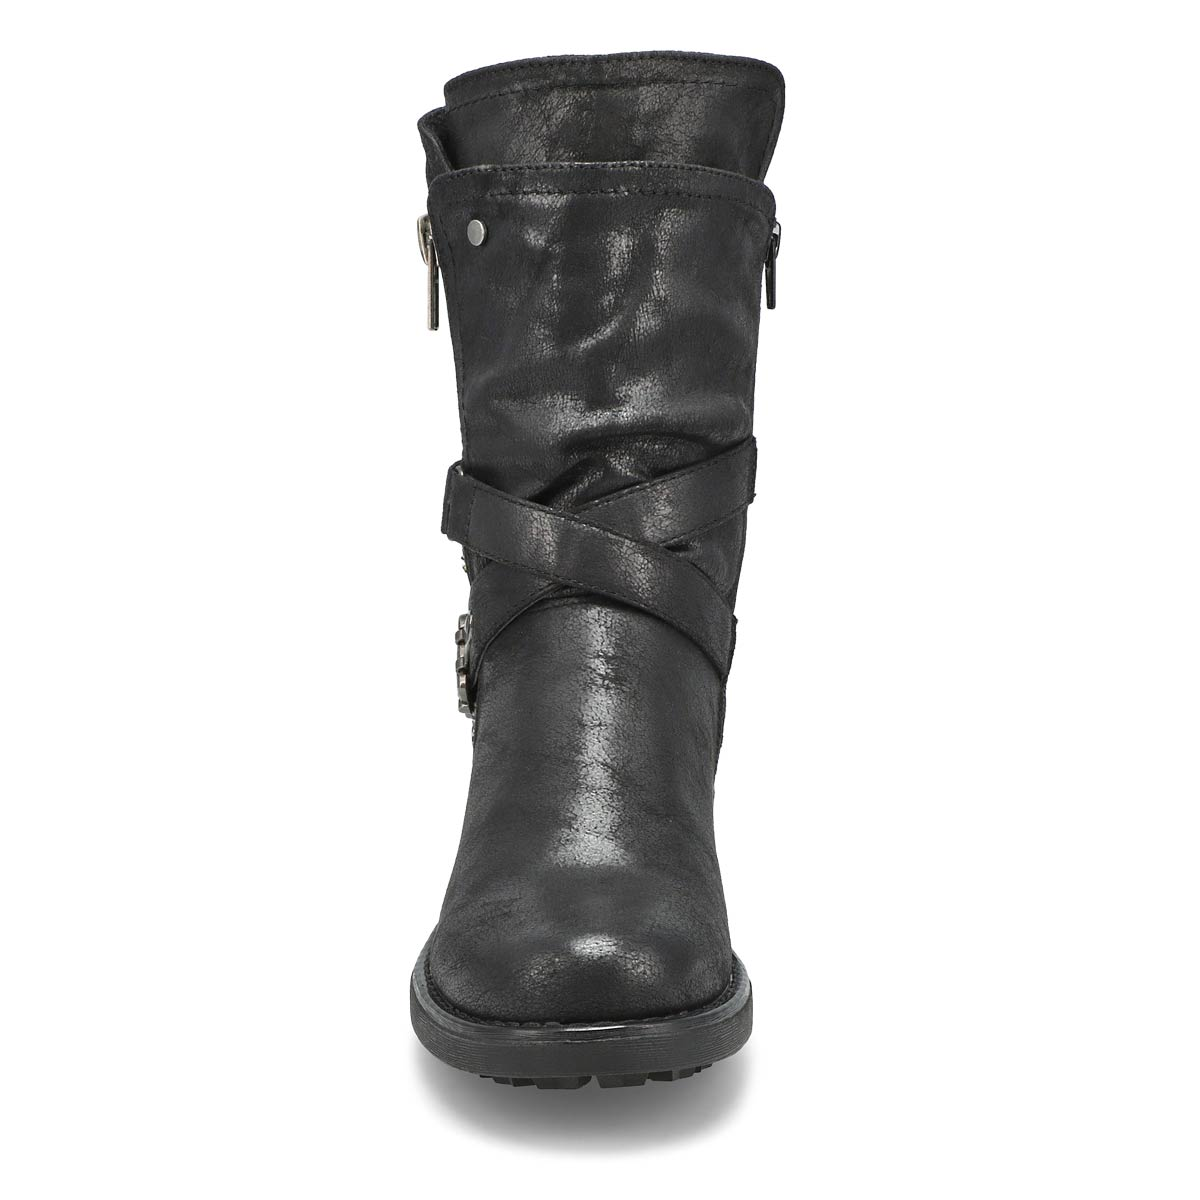 Lds Tessie 2 black slip on combat boot